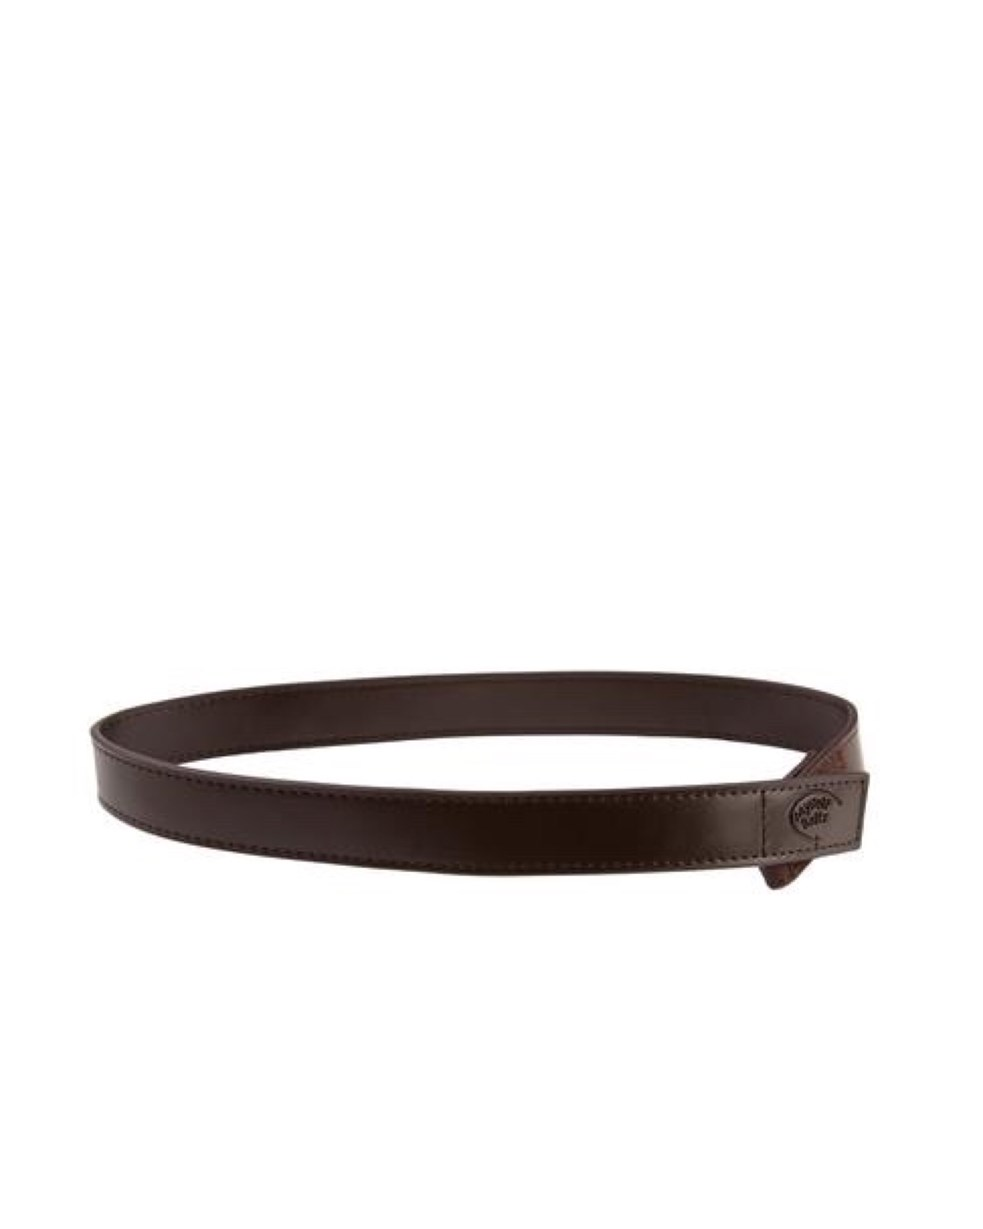 Myself Belts - Leather Belt (Dark Brown)